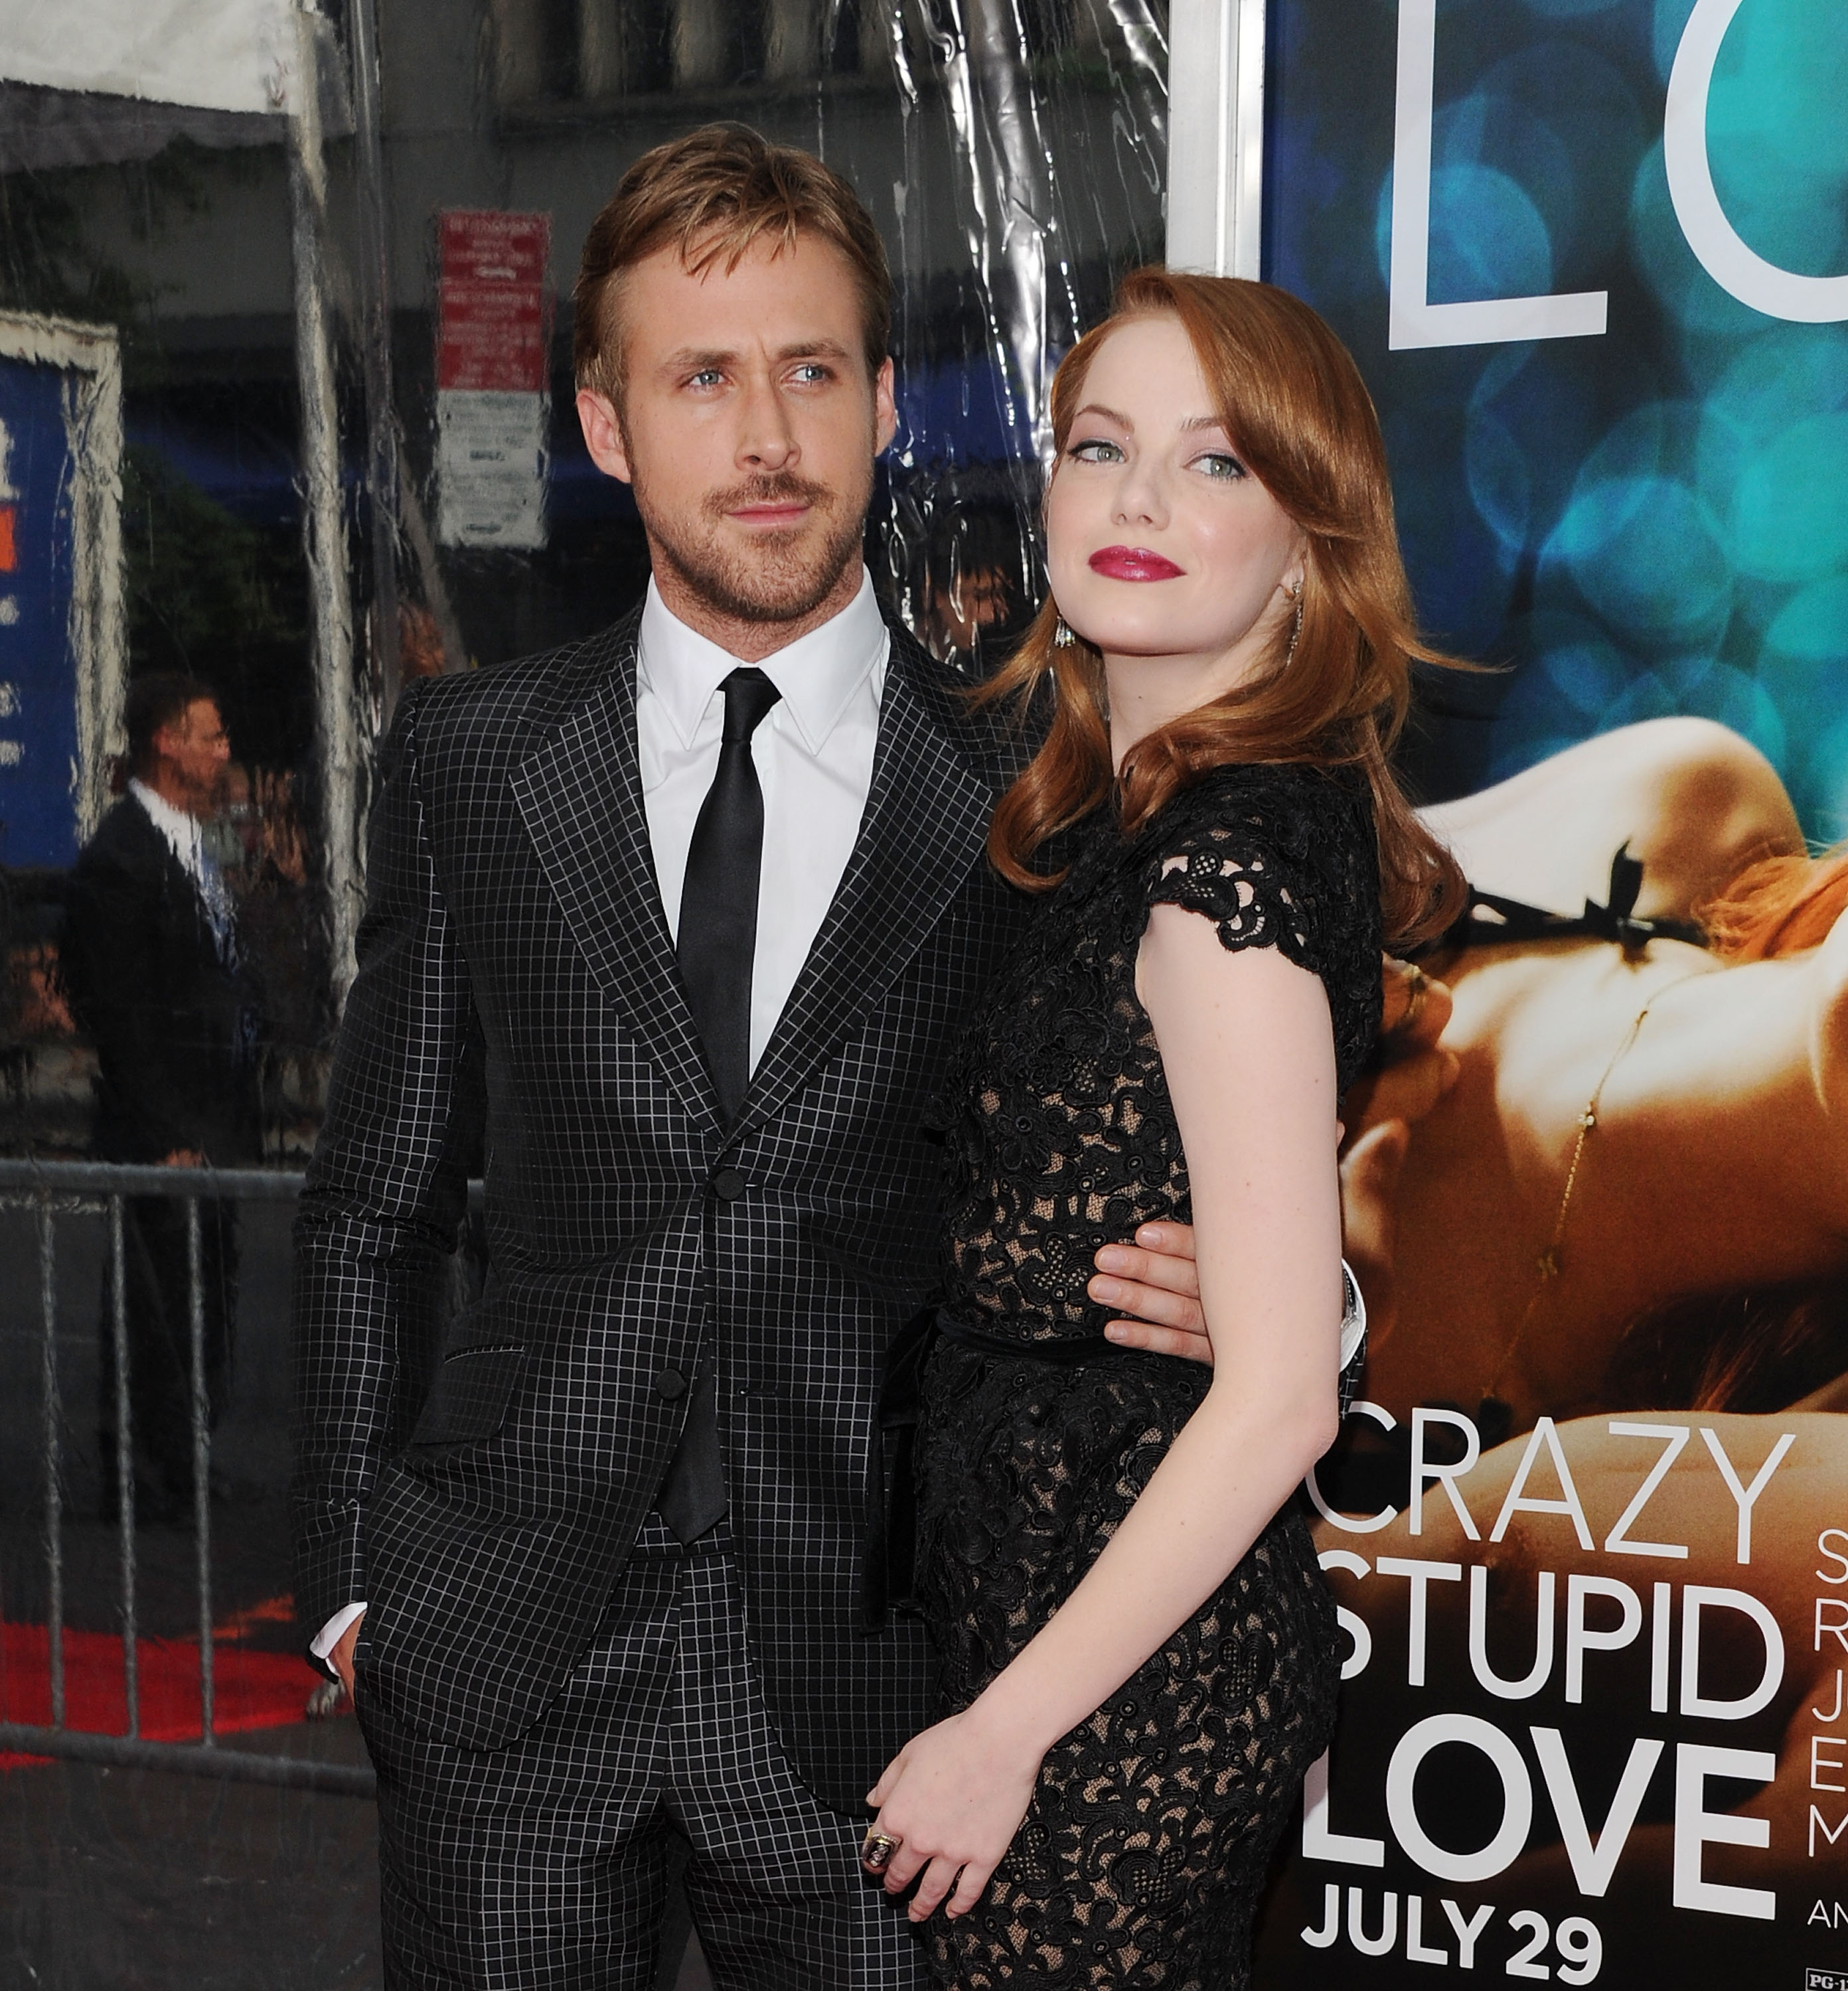 Ryan Gosling and Emma Stone attend the  Crazy, Stupid, Love.  premiere on July 19, 2011 in New York City.